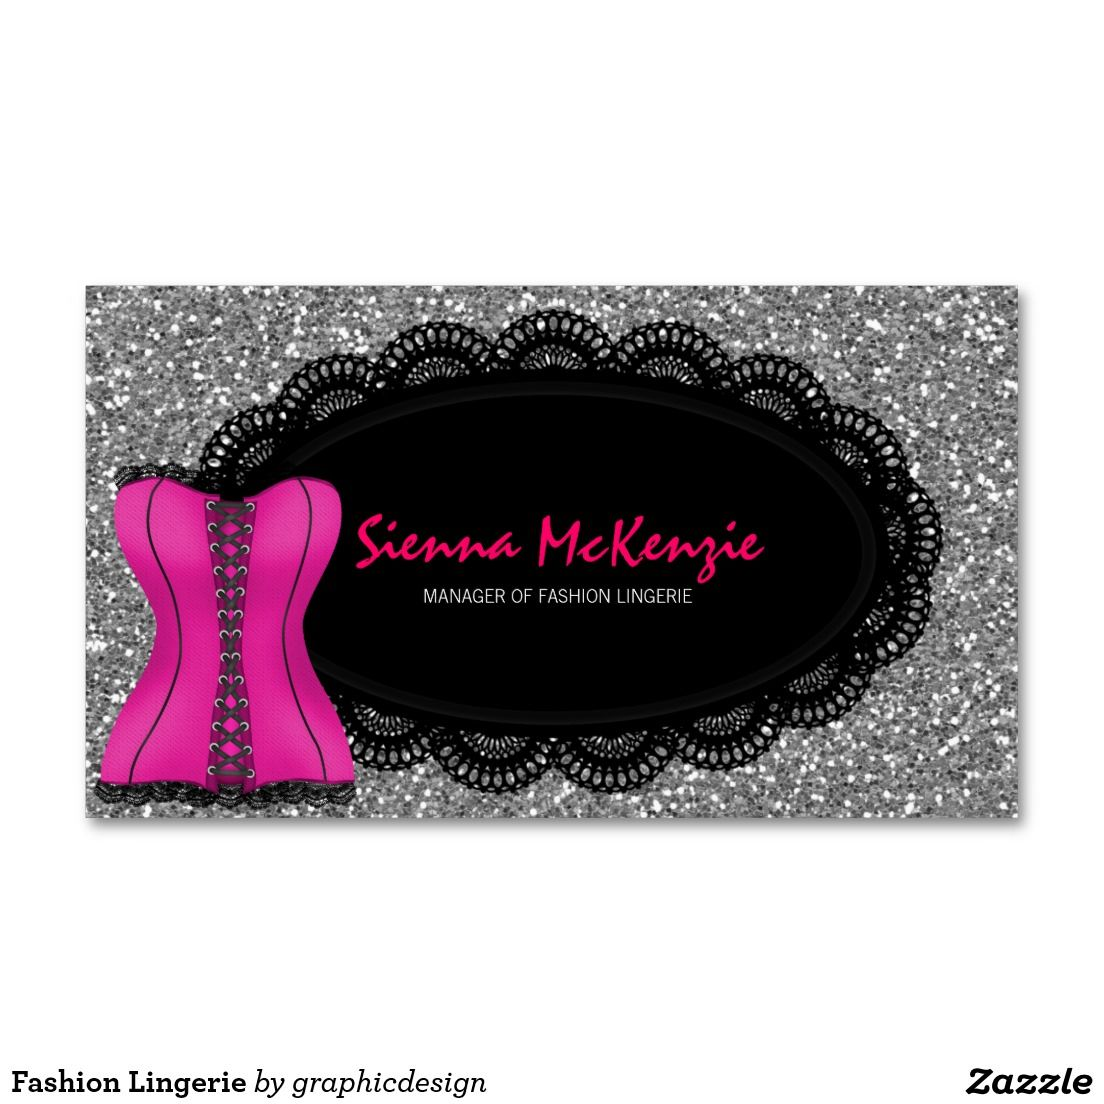 Fashion lingerie business card stuff sold on zazzle pinterest sold fashion lingerie business card boutique available in different products check more at zazzlecelebrationideas reheart Gallery